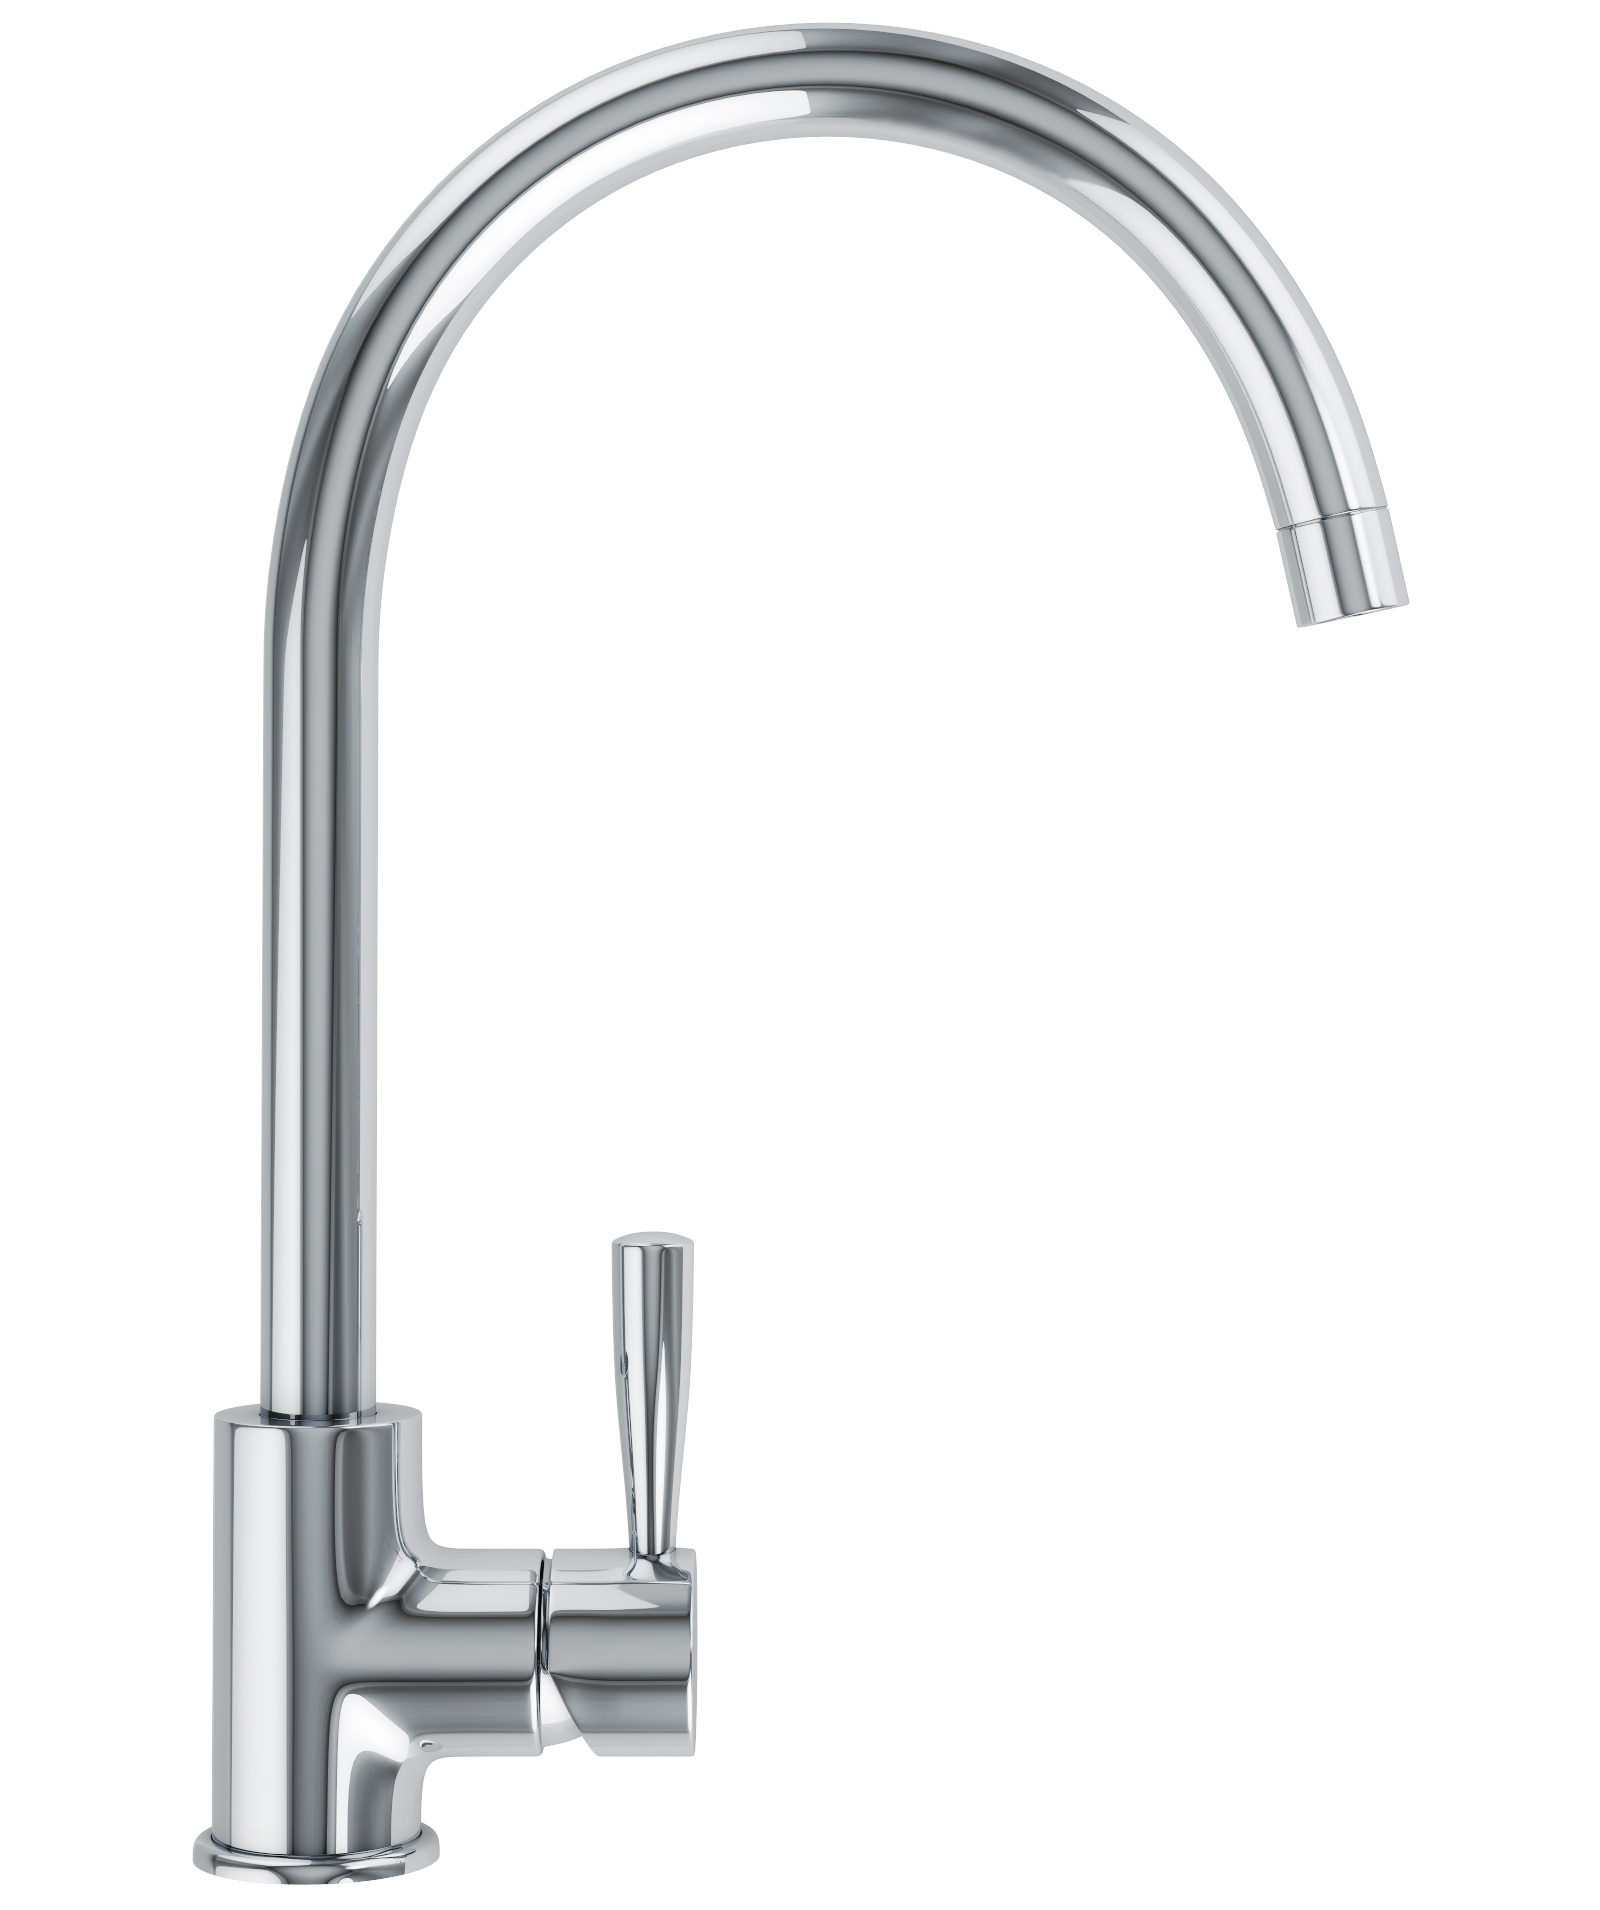 Franke Kitchen Mixer : ... taps kitchen mixer taps franke fuji kitchen sink mixer tap chrome